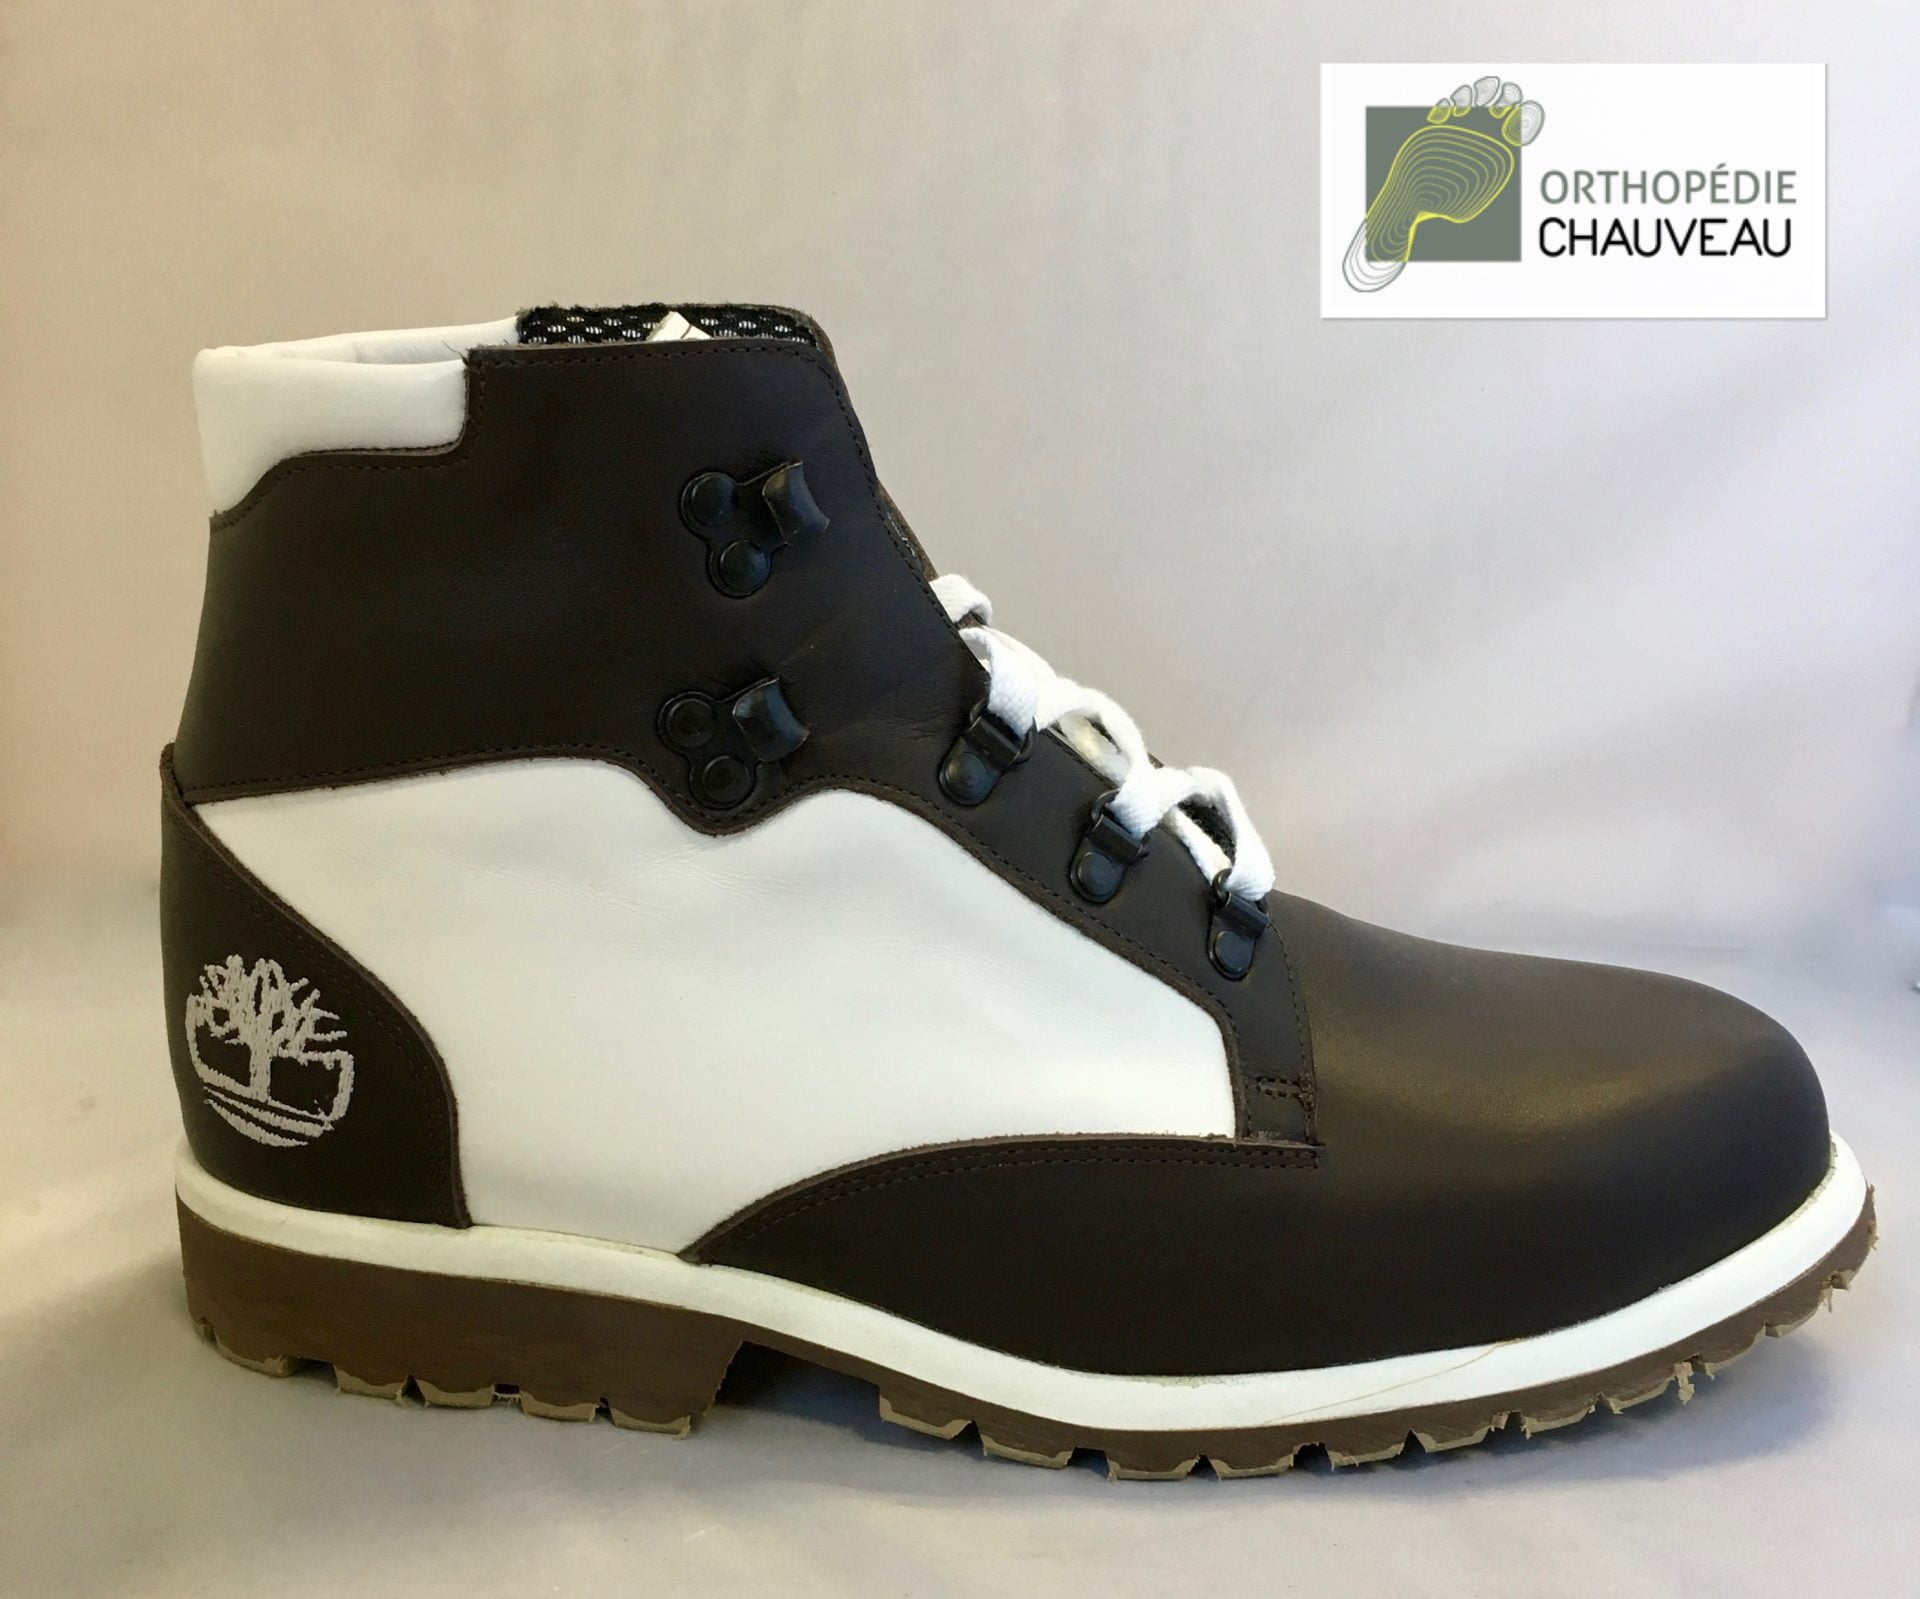 chaussures orthopédiques rennes timberland